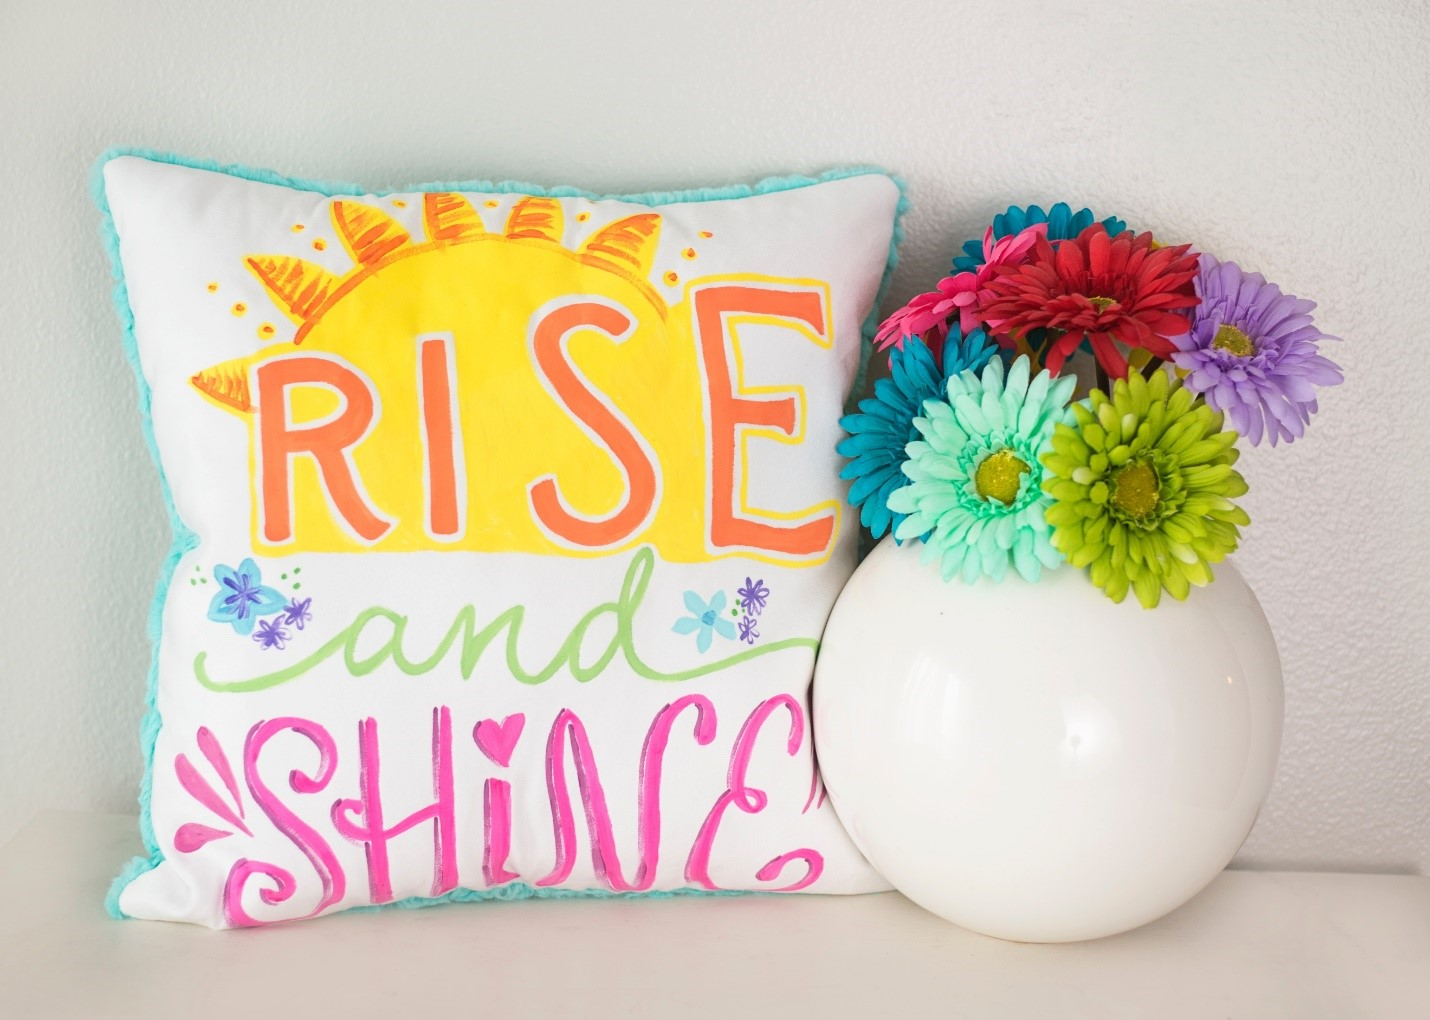 How to make a Rise and Shine Painted Pillow - Pretty Painted Pillows DIY for Spring in Cuddle® Suede and Luxe Cuddle®